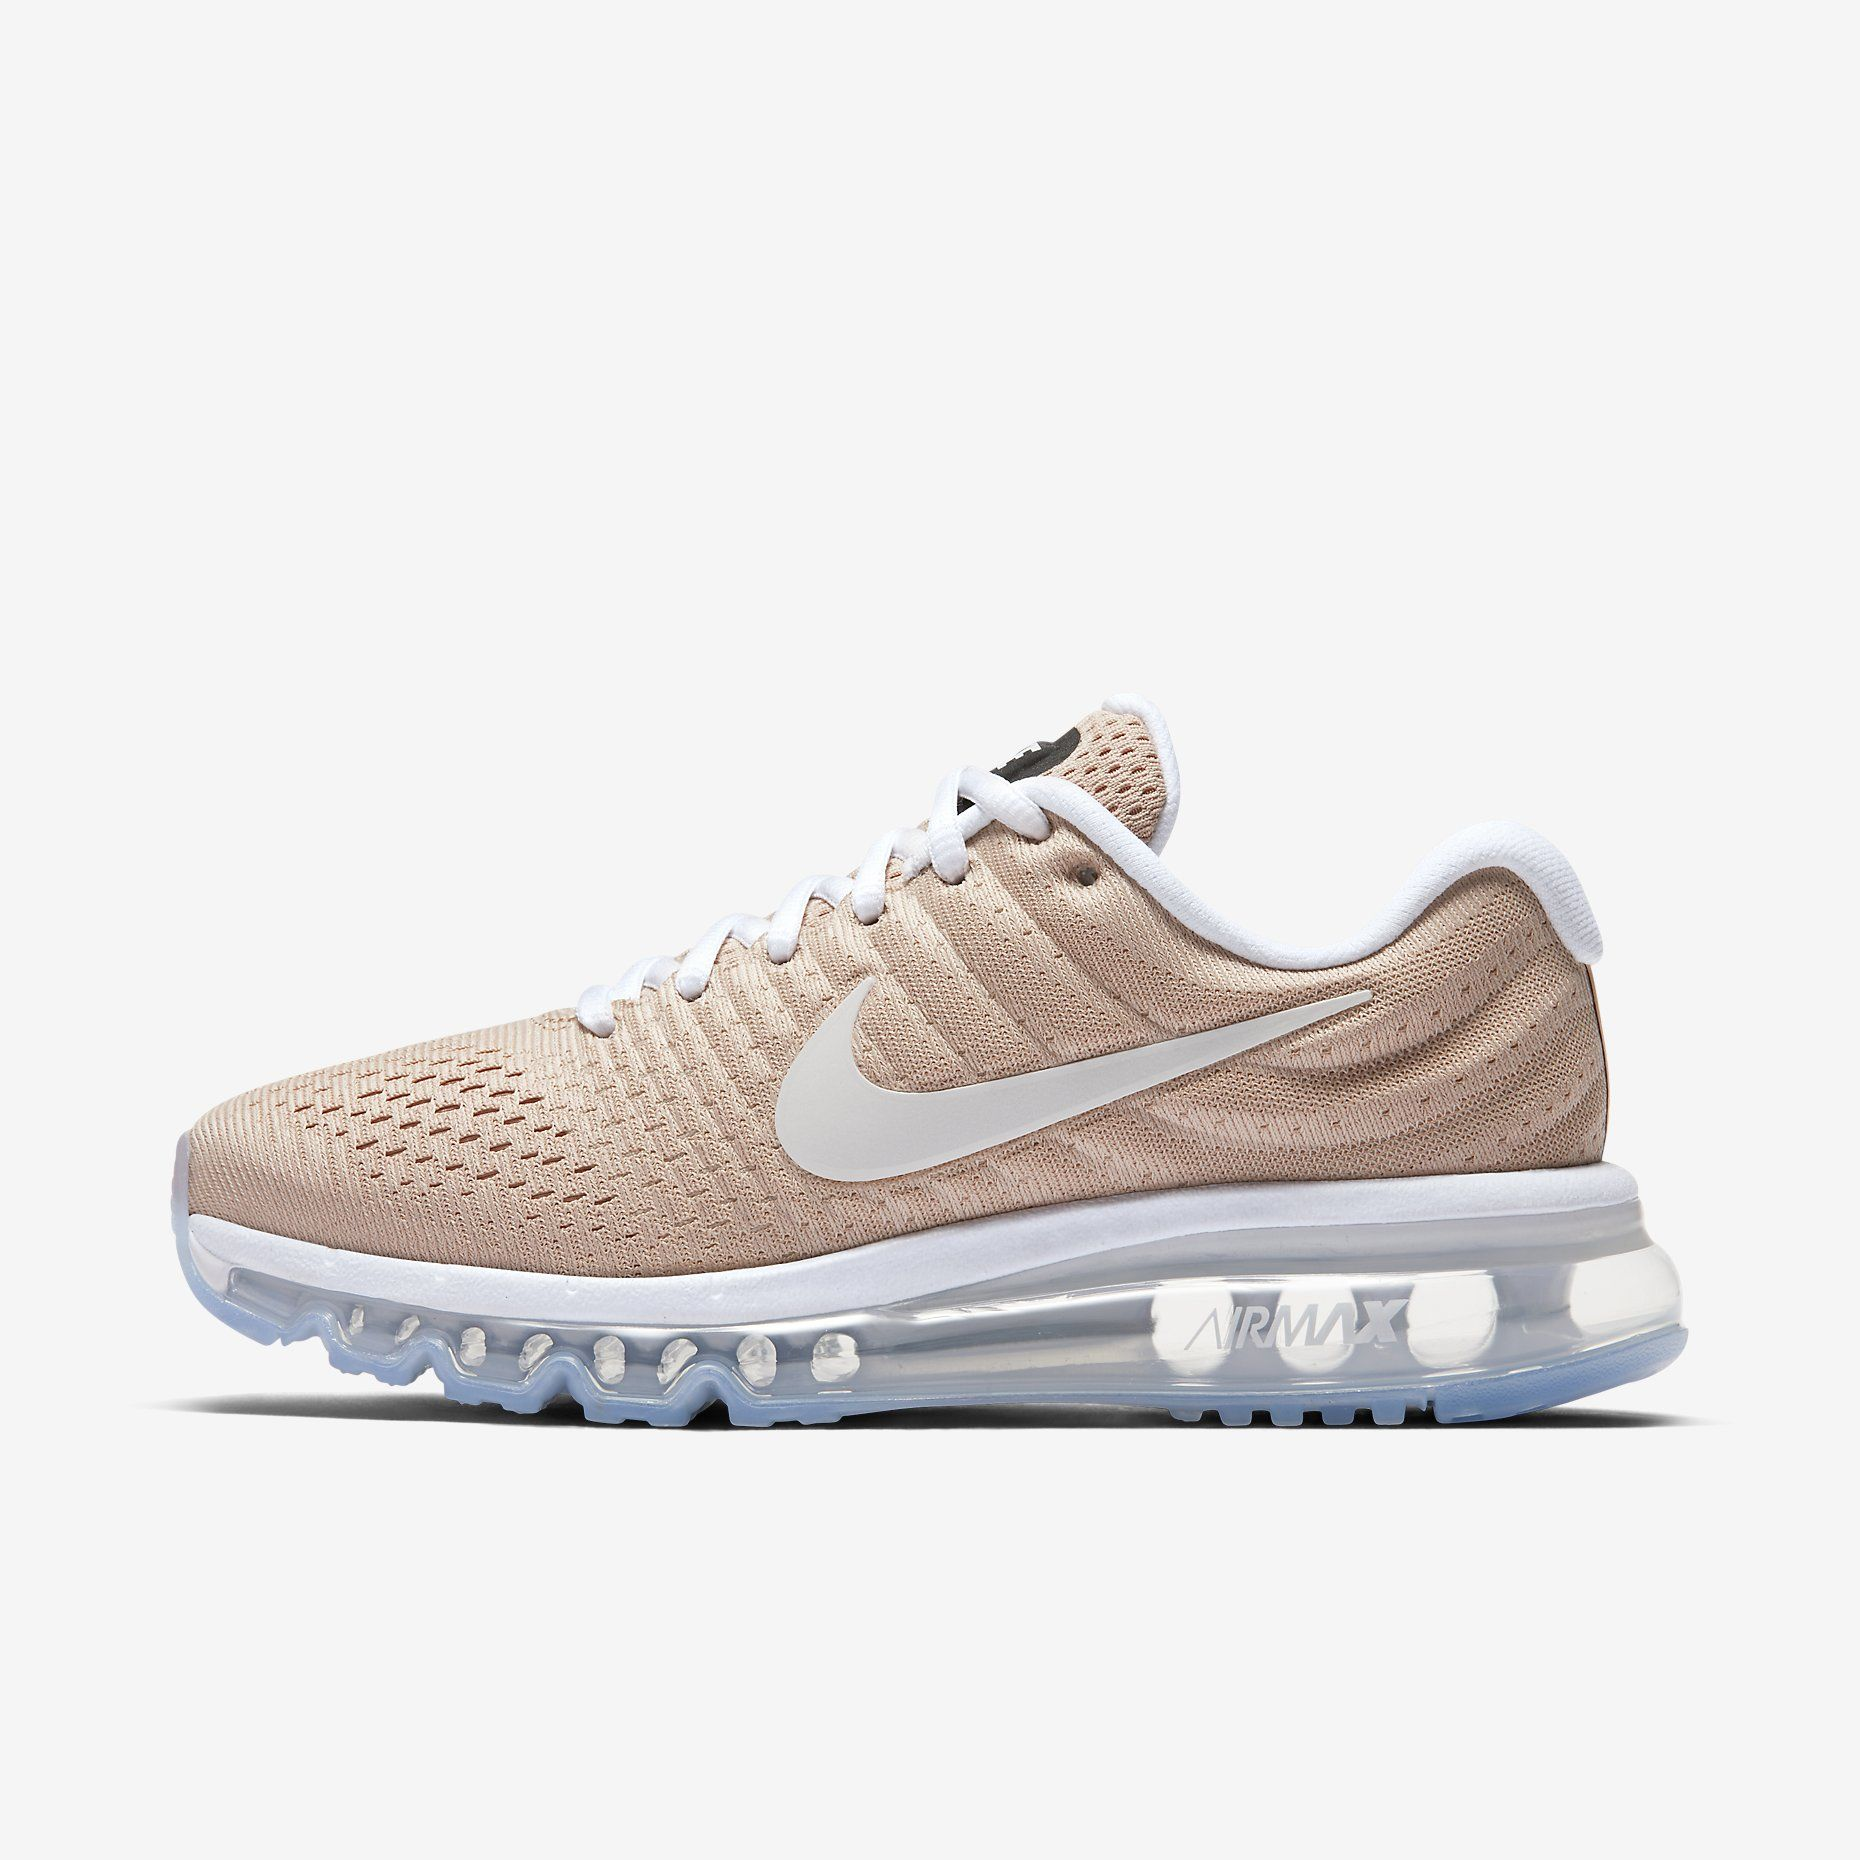 7d95ad38415e Discover ideas about Nike Basketball Shoes. Buy the latest fashion Nike Air  Max 2017 Pure Platinum Cool Grey Hot Lava White Women s ...